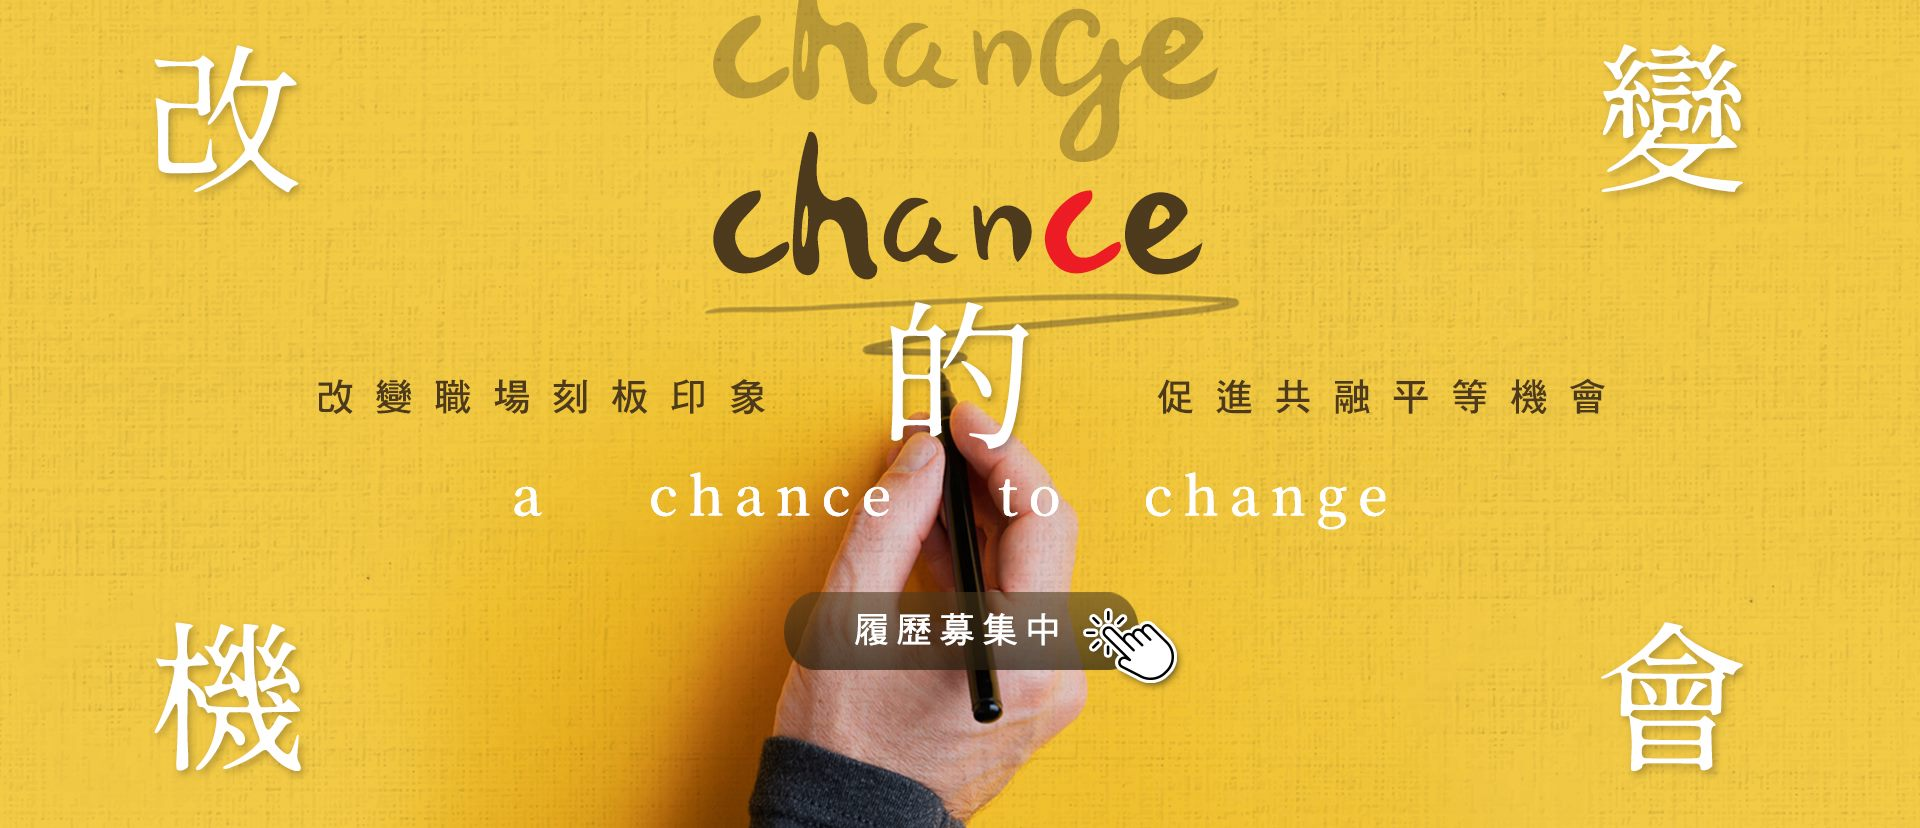 a chance to change  改變的機會